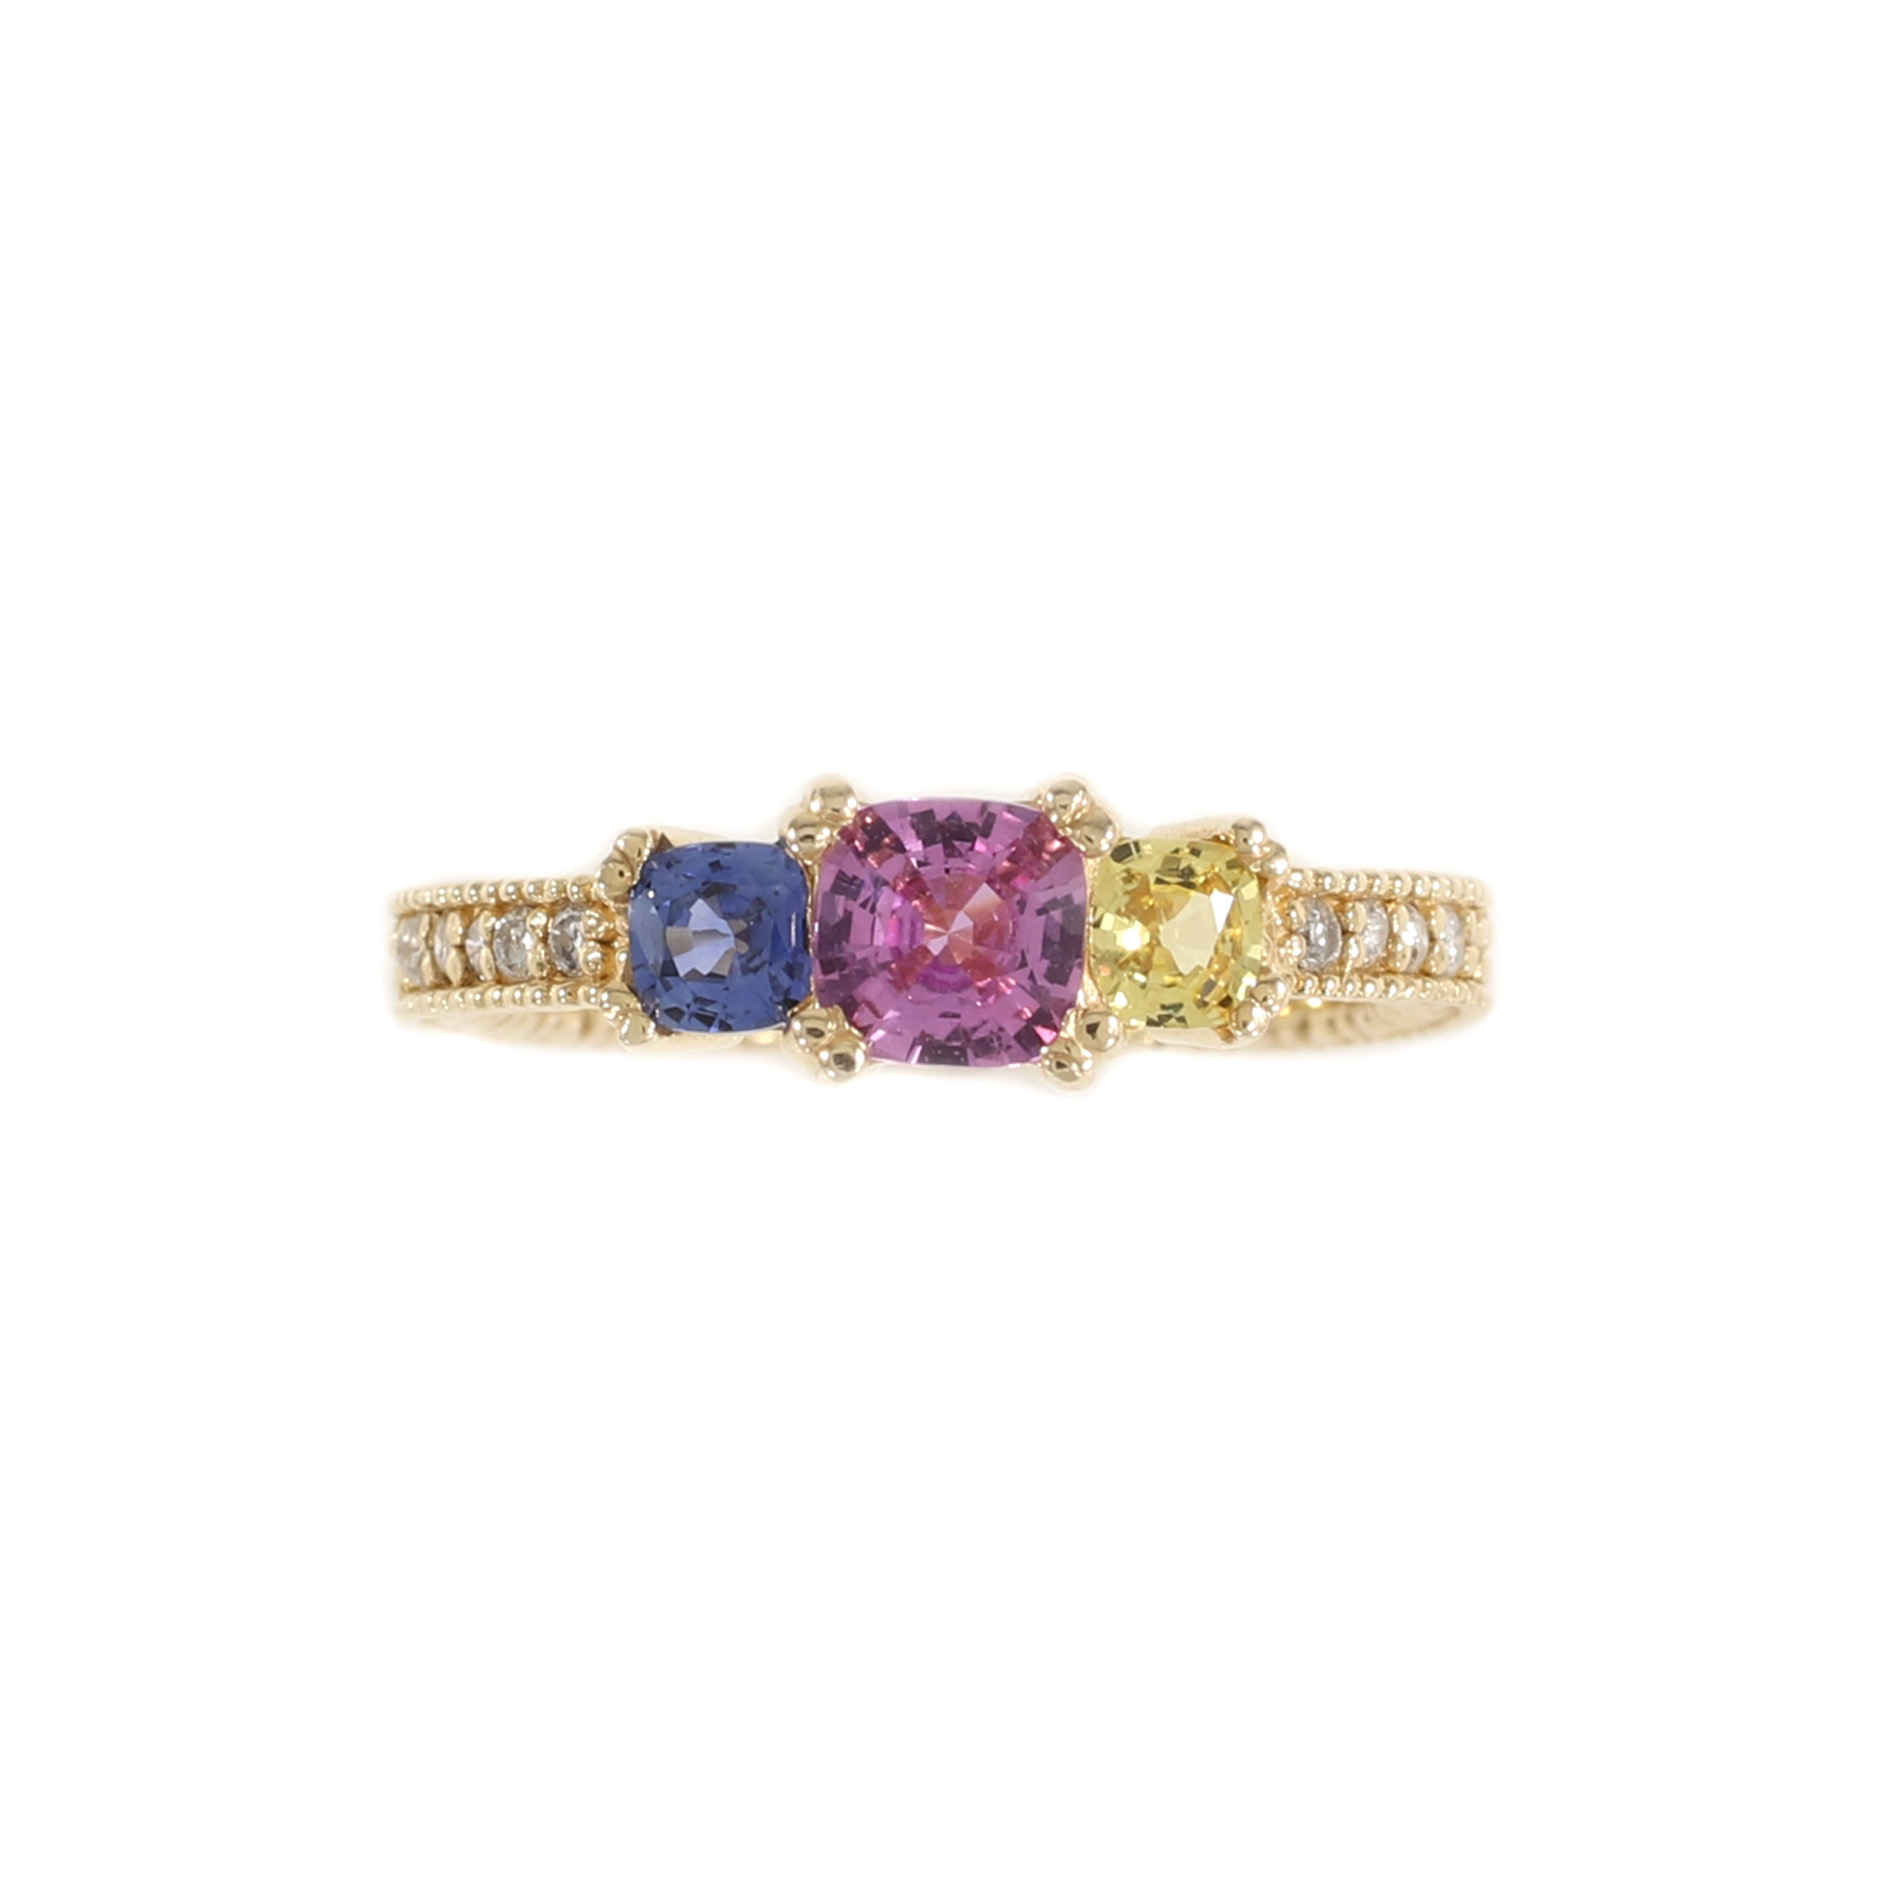 Vivid Three Stone Sapphire & Diamond Ring